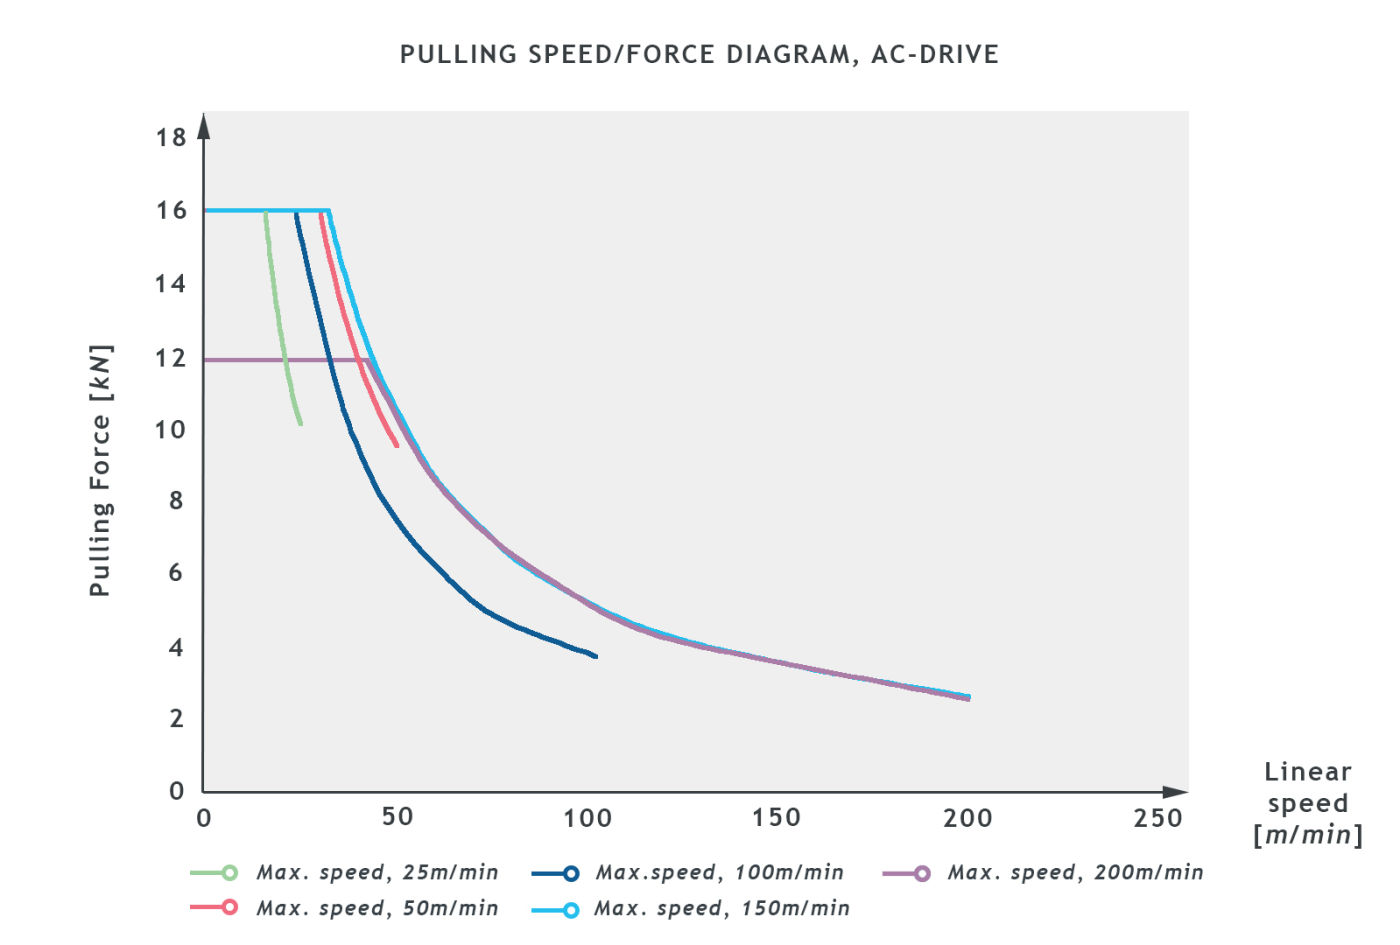 BCA18_SB0601022_PULLING_SPEED_graph.jpg